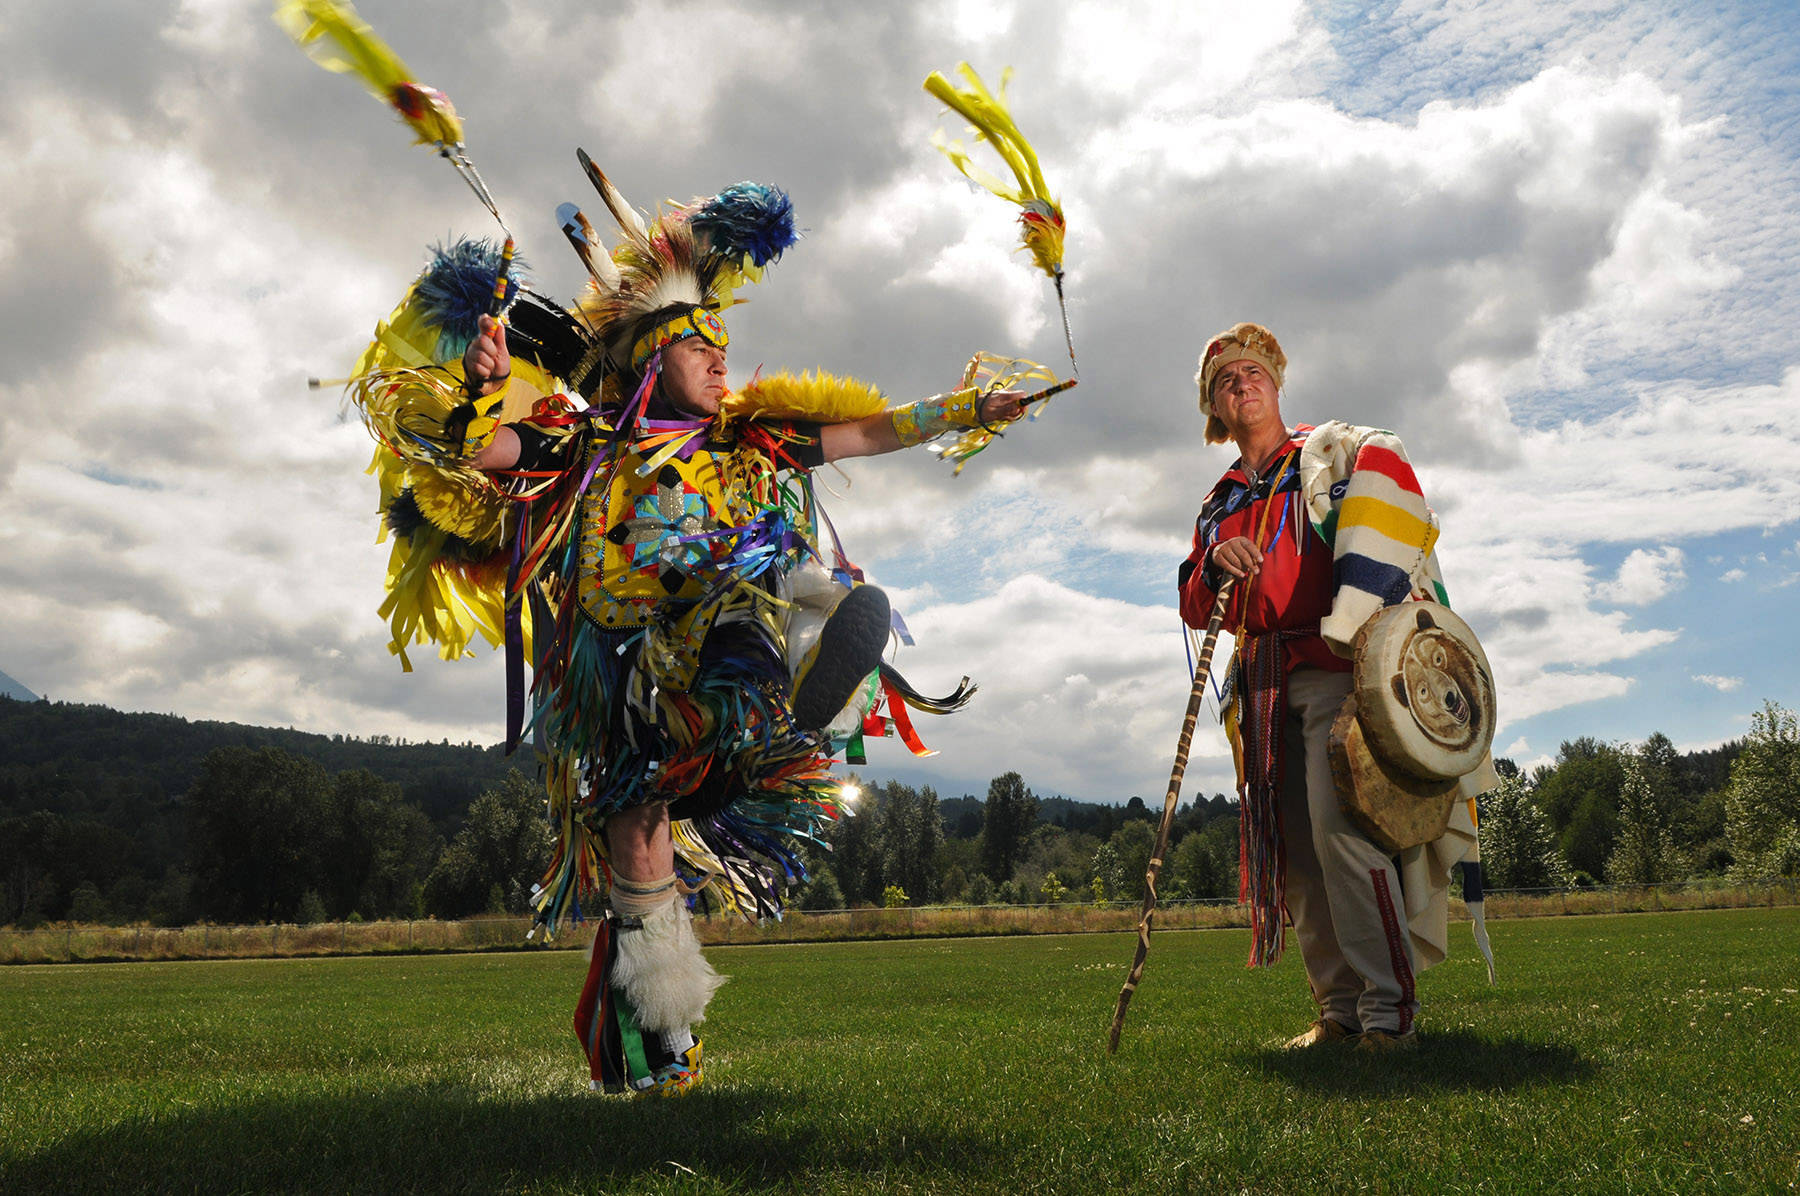 Gary Abbott (left) and Louis De Jaeger were two of the organizers for the 2014 Spirit of the People Powwow in Chilliwack. Monday, June 21, 2021 is Indigenous Peoples Day. (Jenna Hauck/ Chilliwack Progress file)